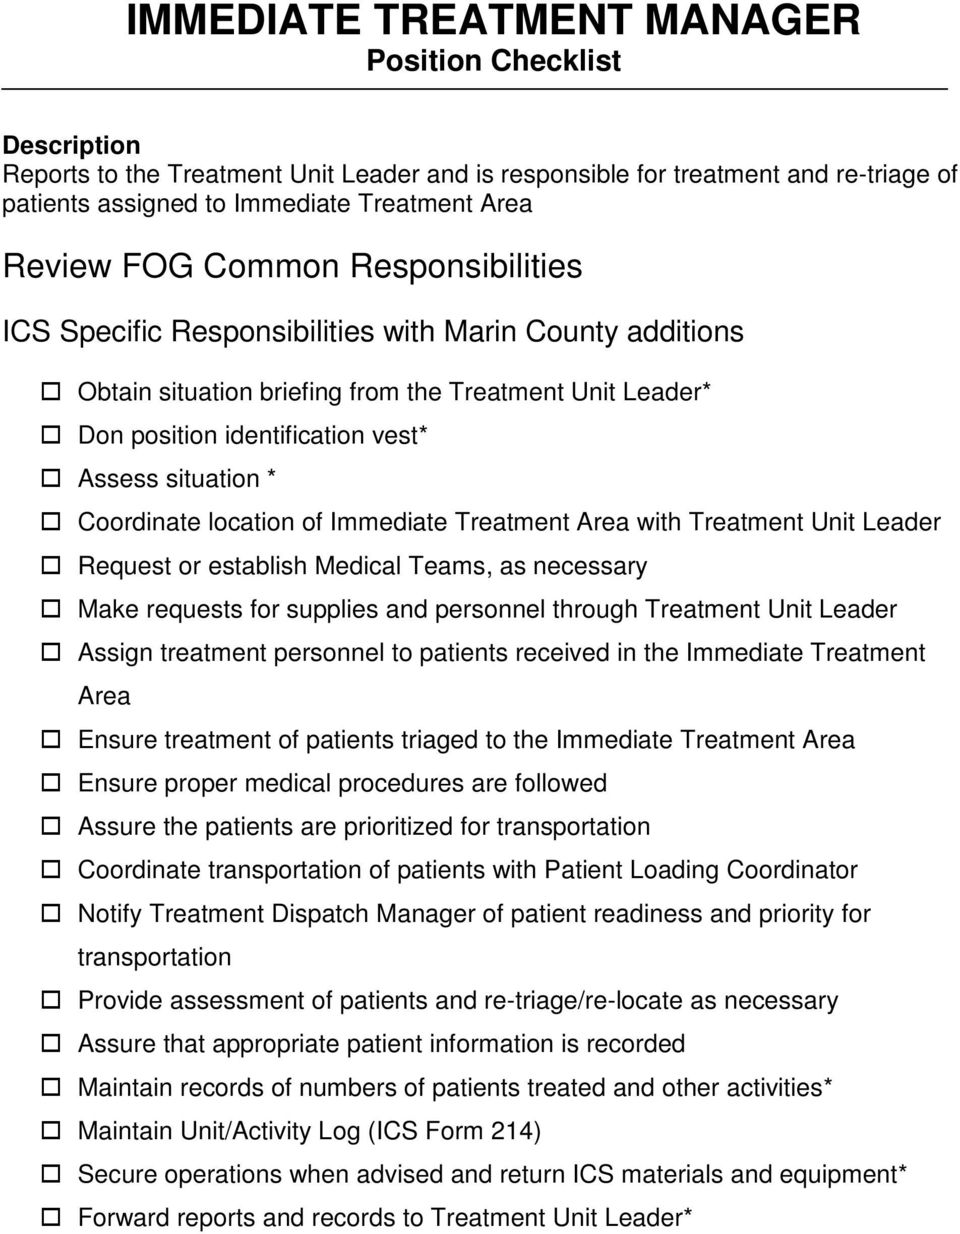 personnel through Treatment Unit Leader Assign treatment personnel to patients received in the Immediate Treatment Area Ensure treatment of patients triaged to the Immediate Treatment Area Ensure